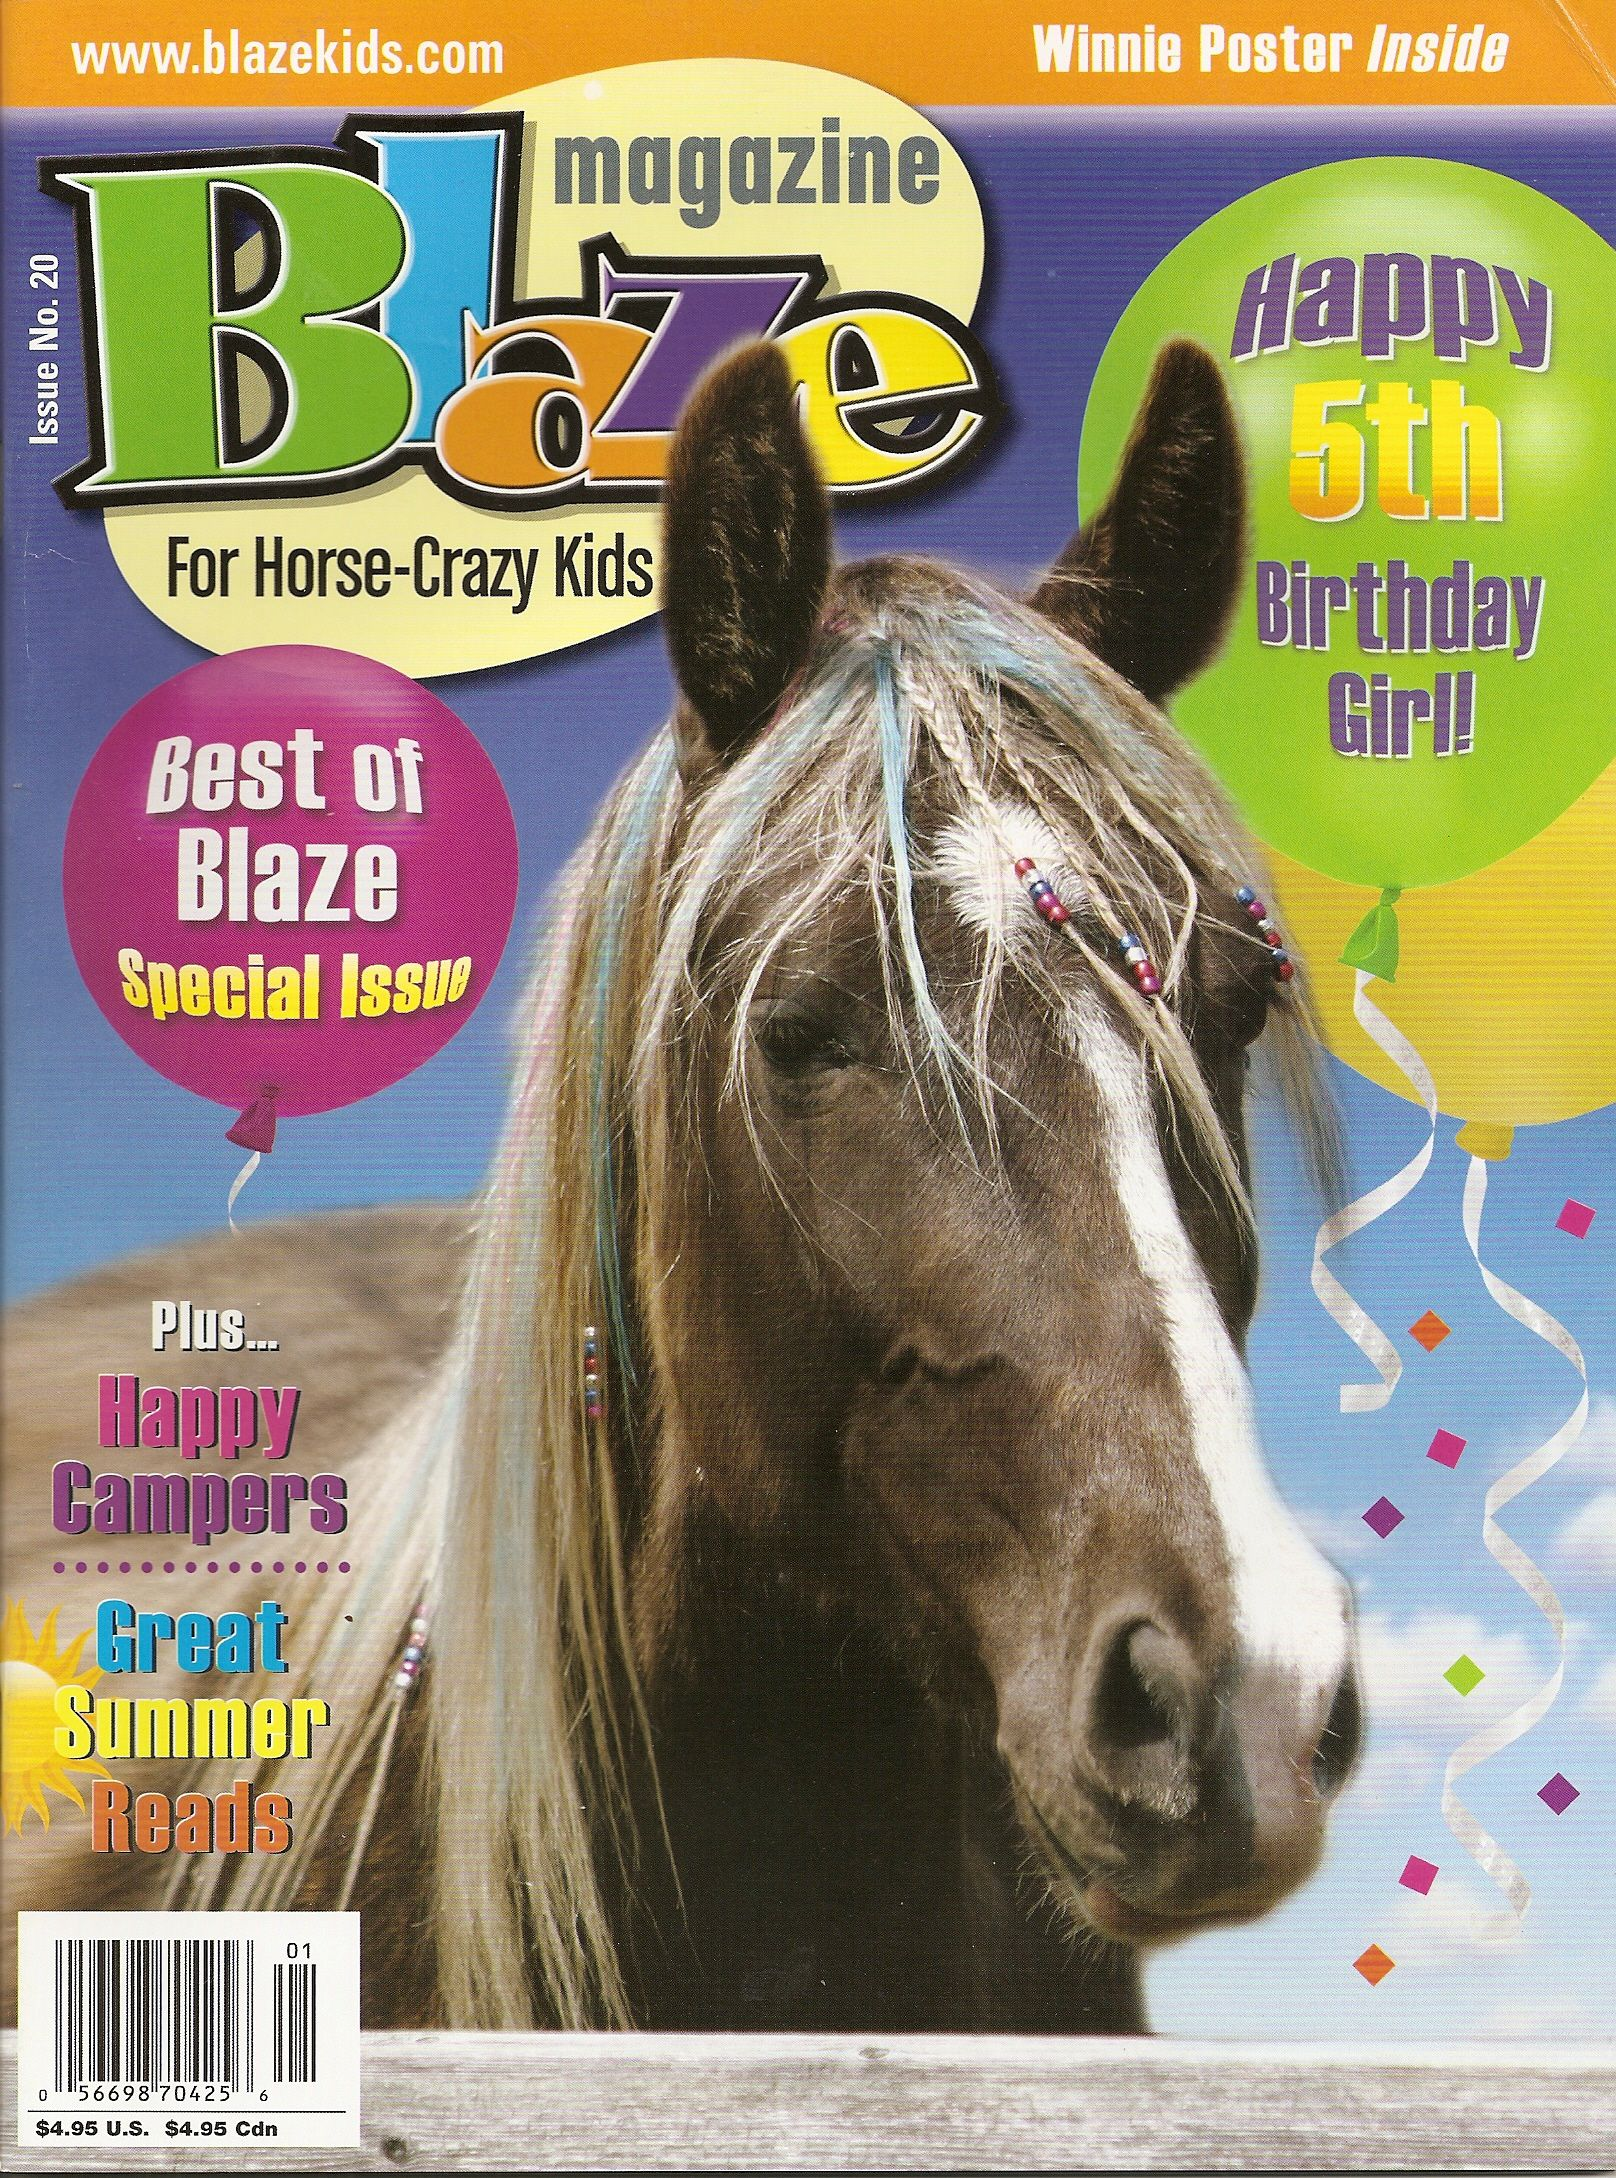 This was my Birthday issue. Celebrating the big one...5